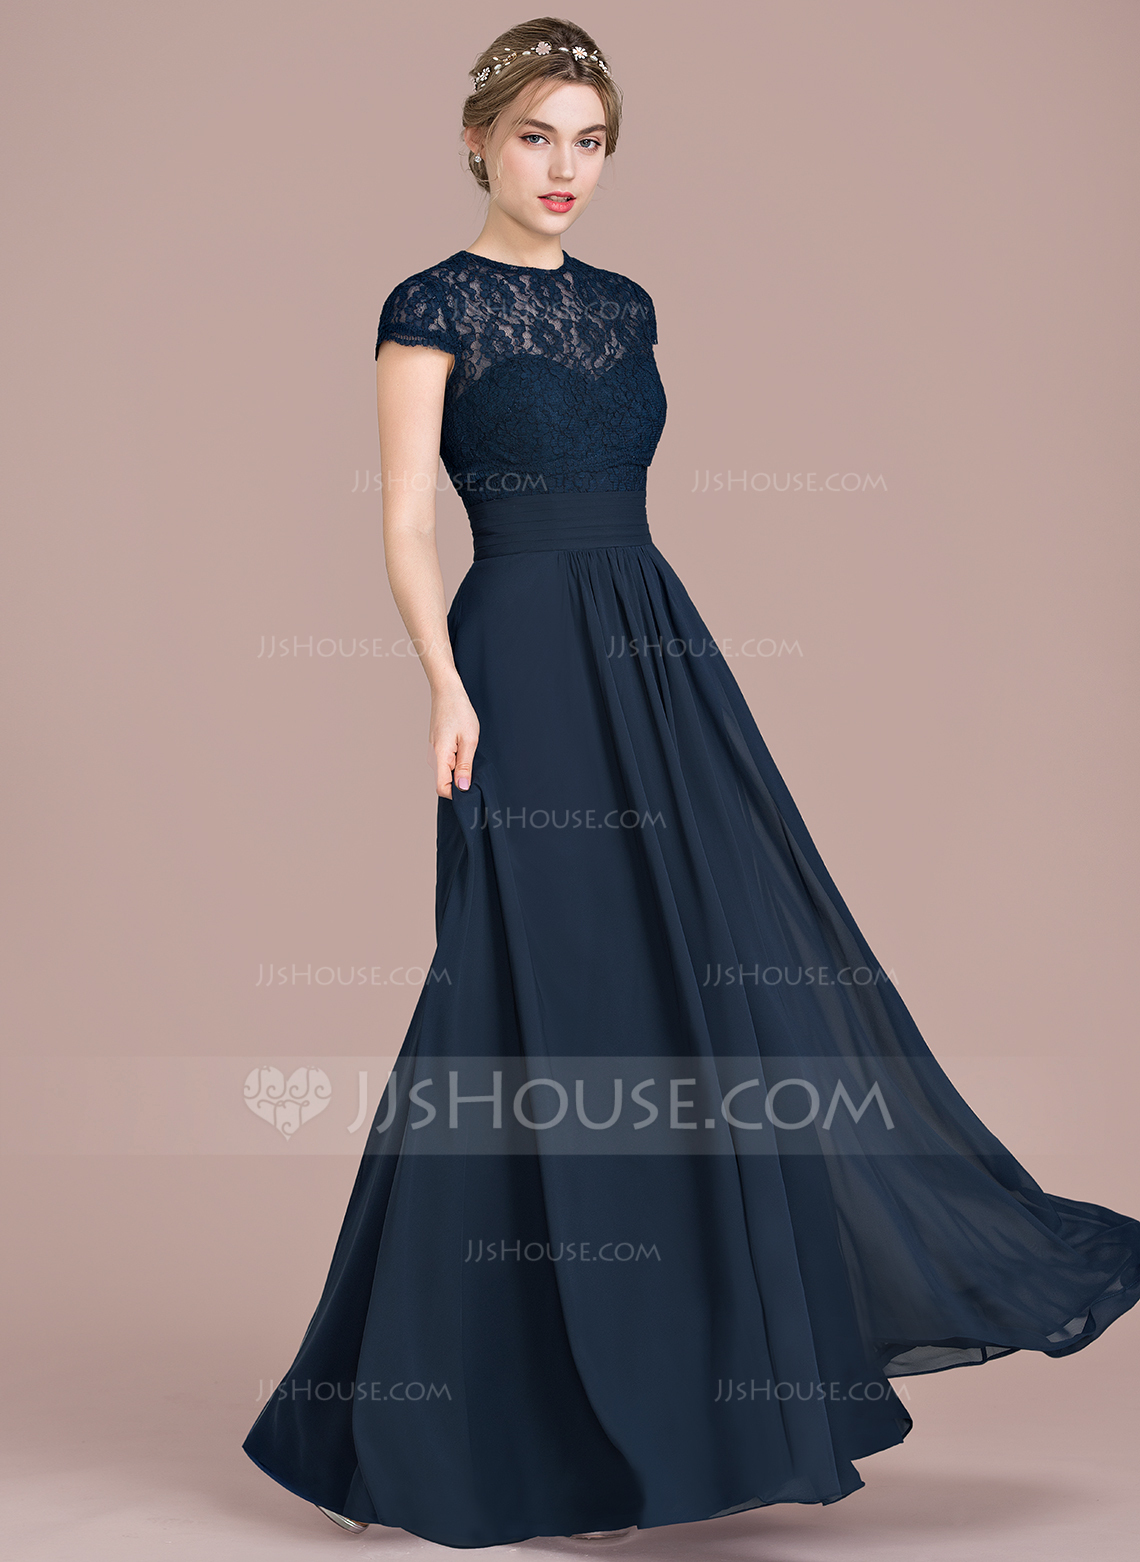 floor length dress a-line/princess sweetheart floor-length chiffon lace bridesmaid dress with  ruffle. loading zoom DIOEHBQ